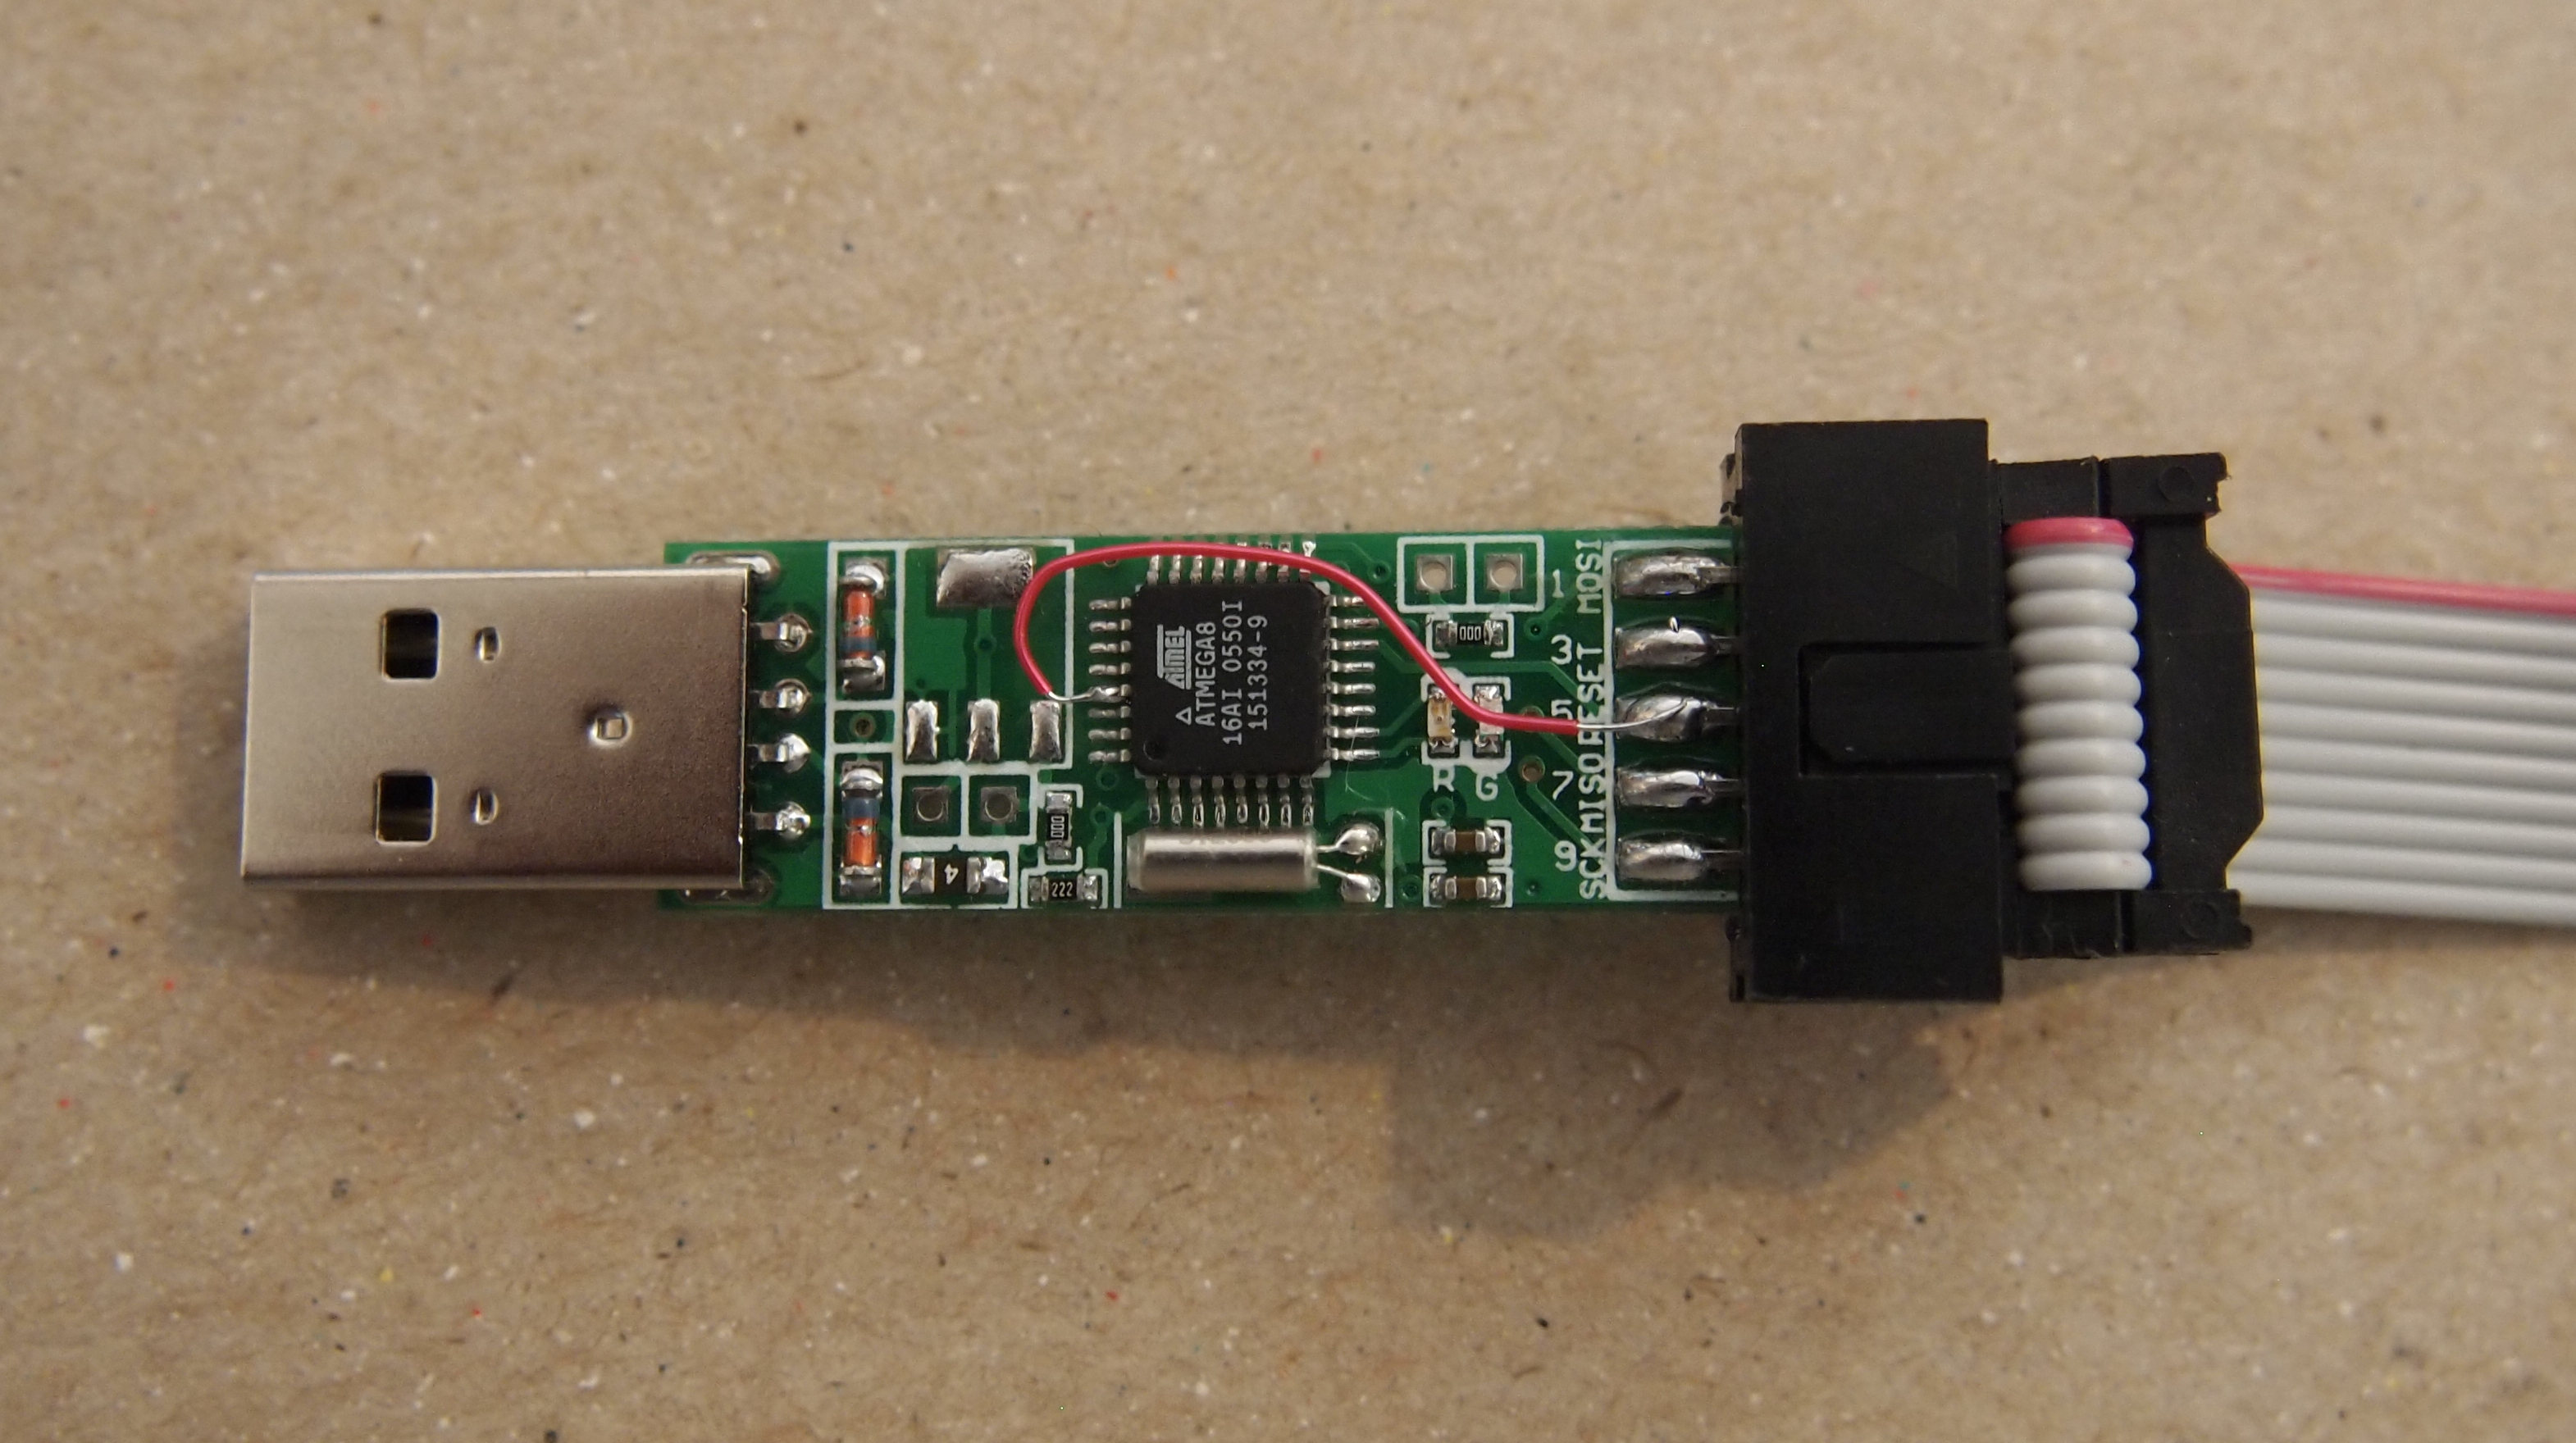 Cheap Chinese Usb Isp Programmers Fords Ponderings Used The Avrisp Incircuit Programmer To Program Chip You Can Guts Of Showing Temporary Tiny Wire Modification